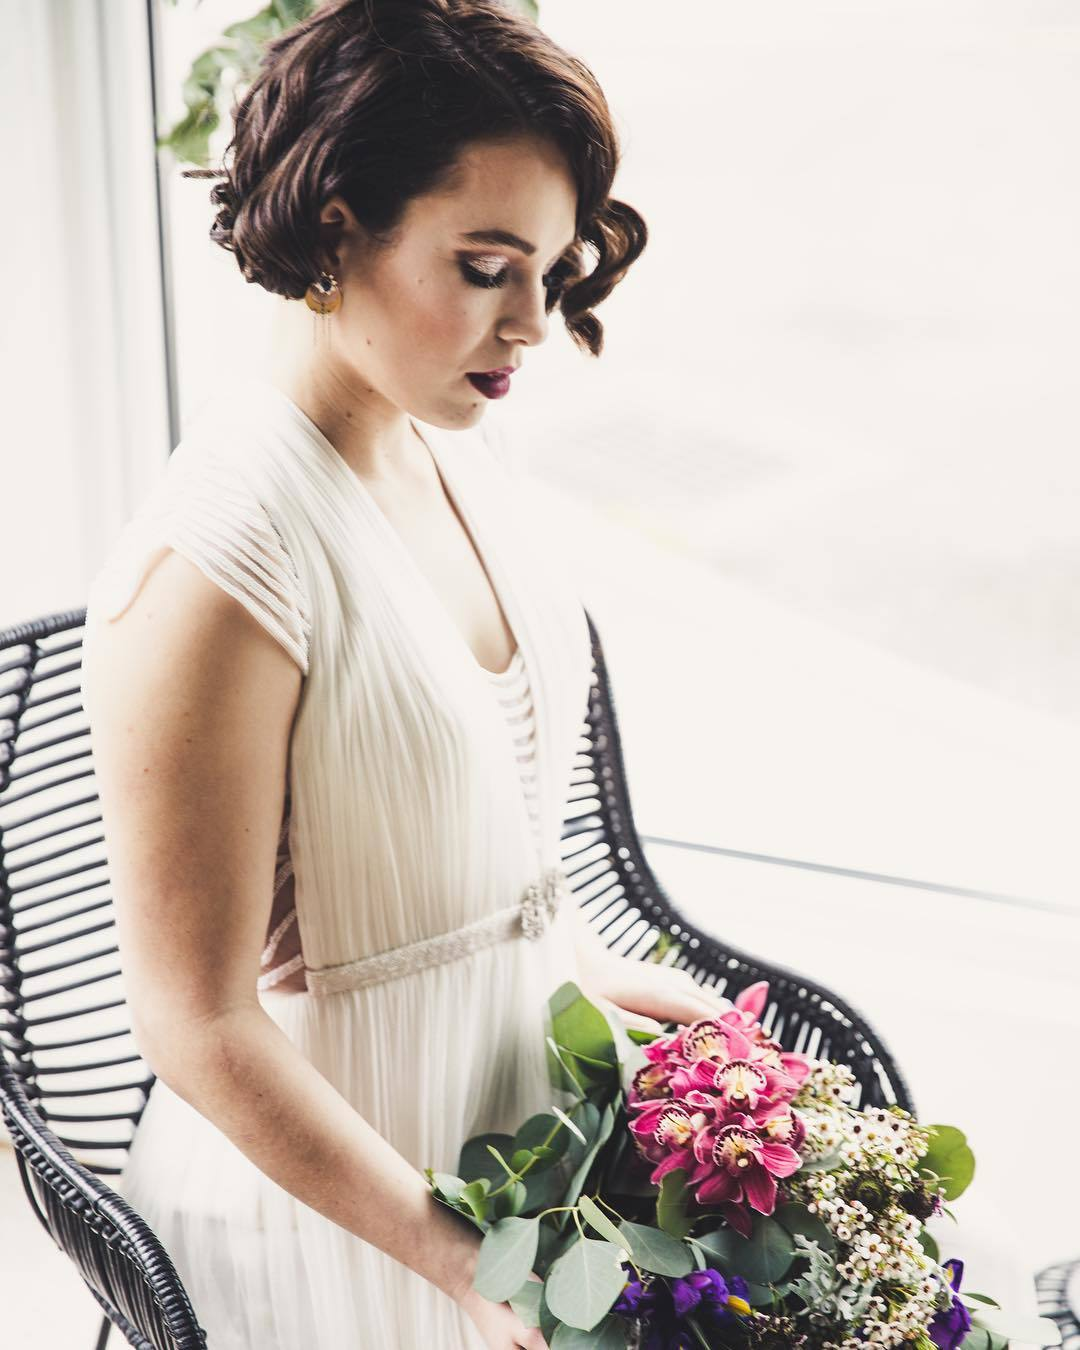 Vintage wedding hairstyles: Woman with short hair styled into retro curls, wearing a dress and holding flowers